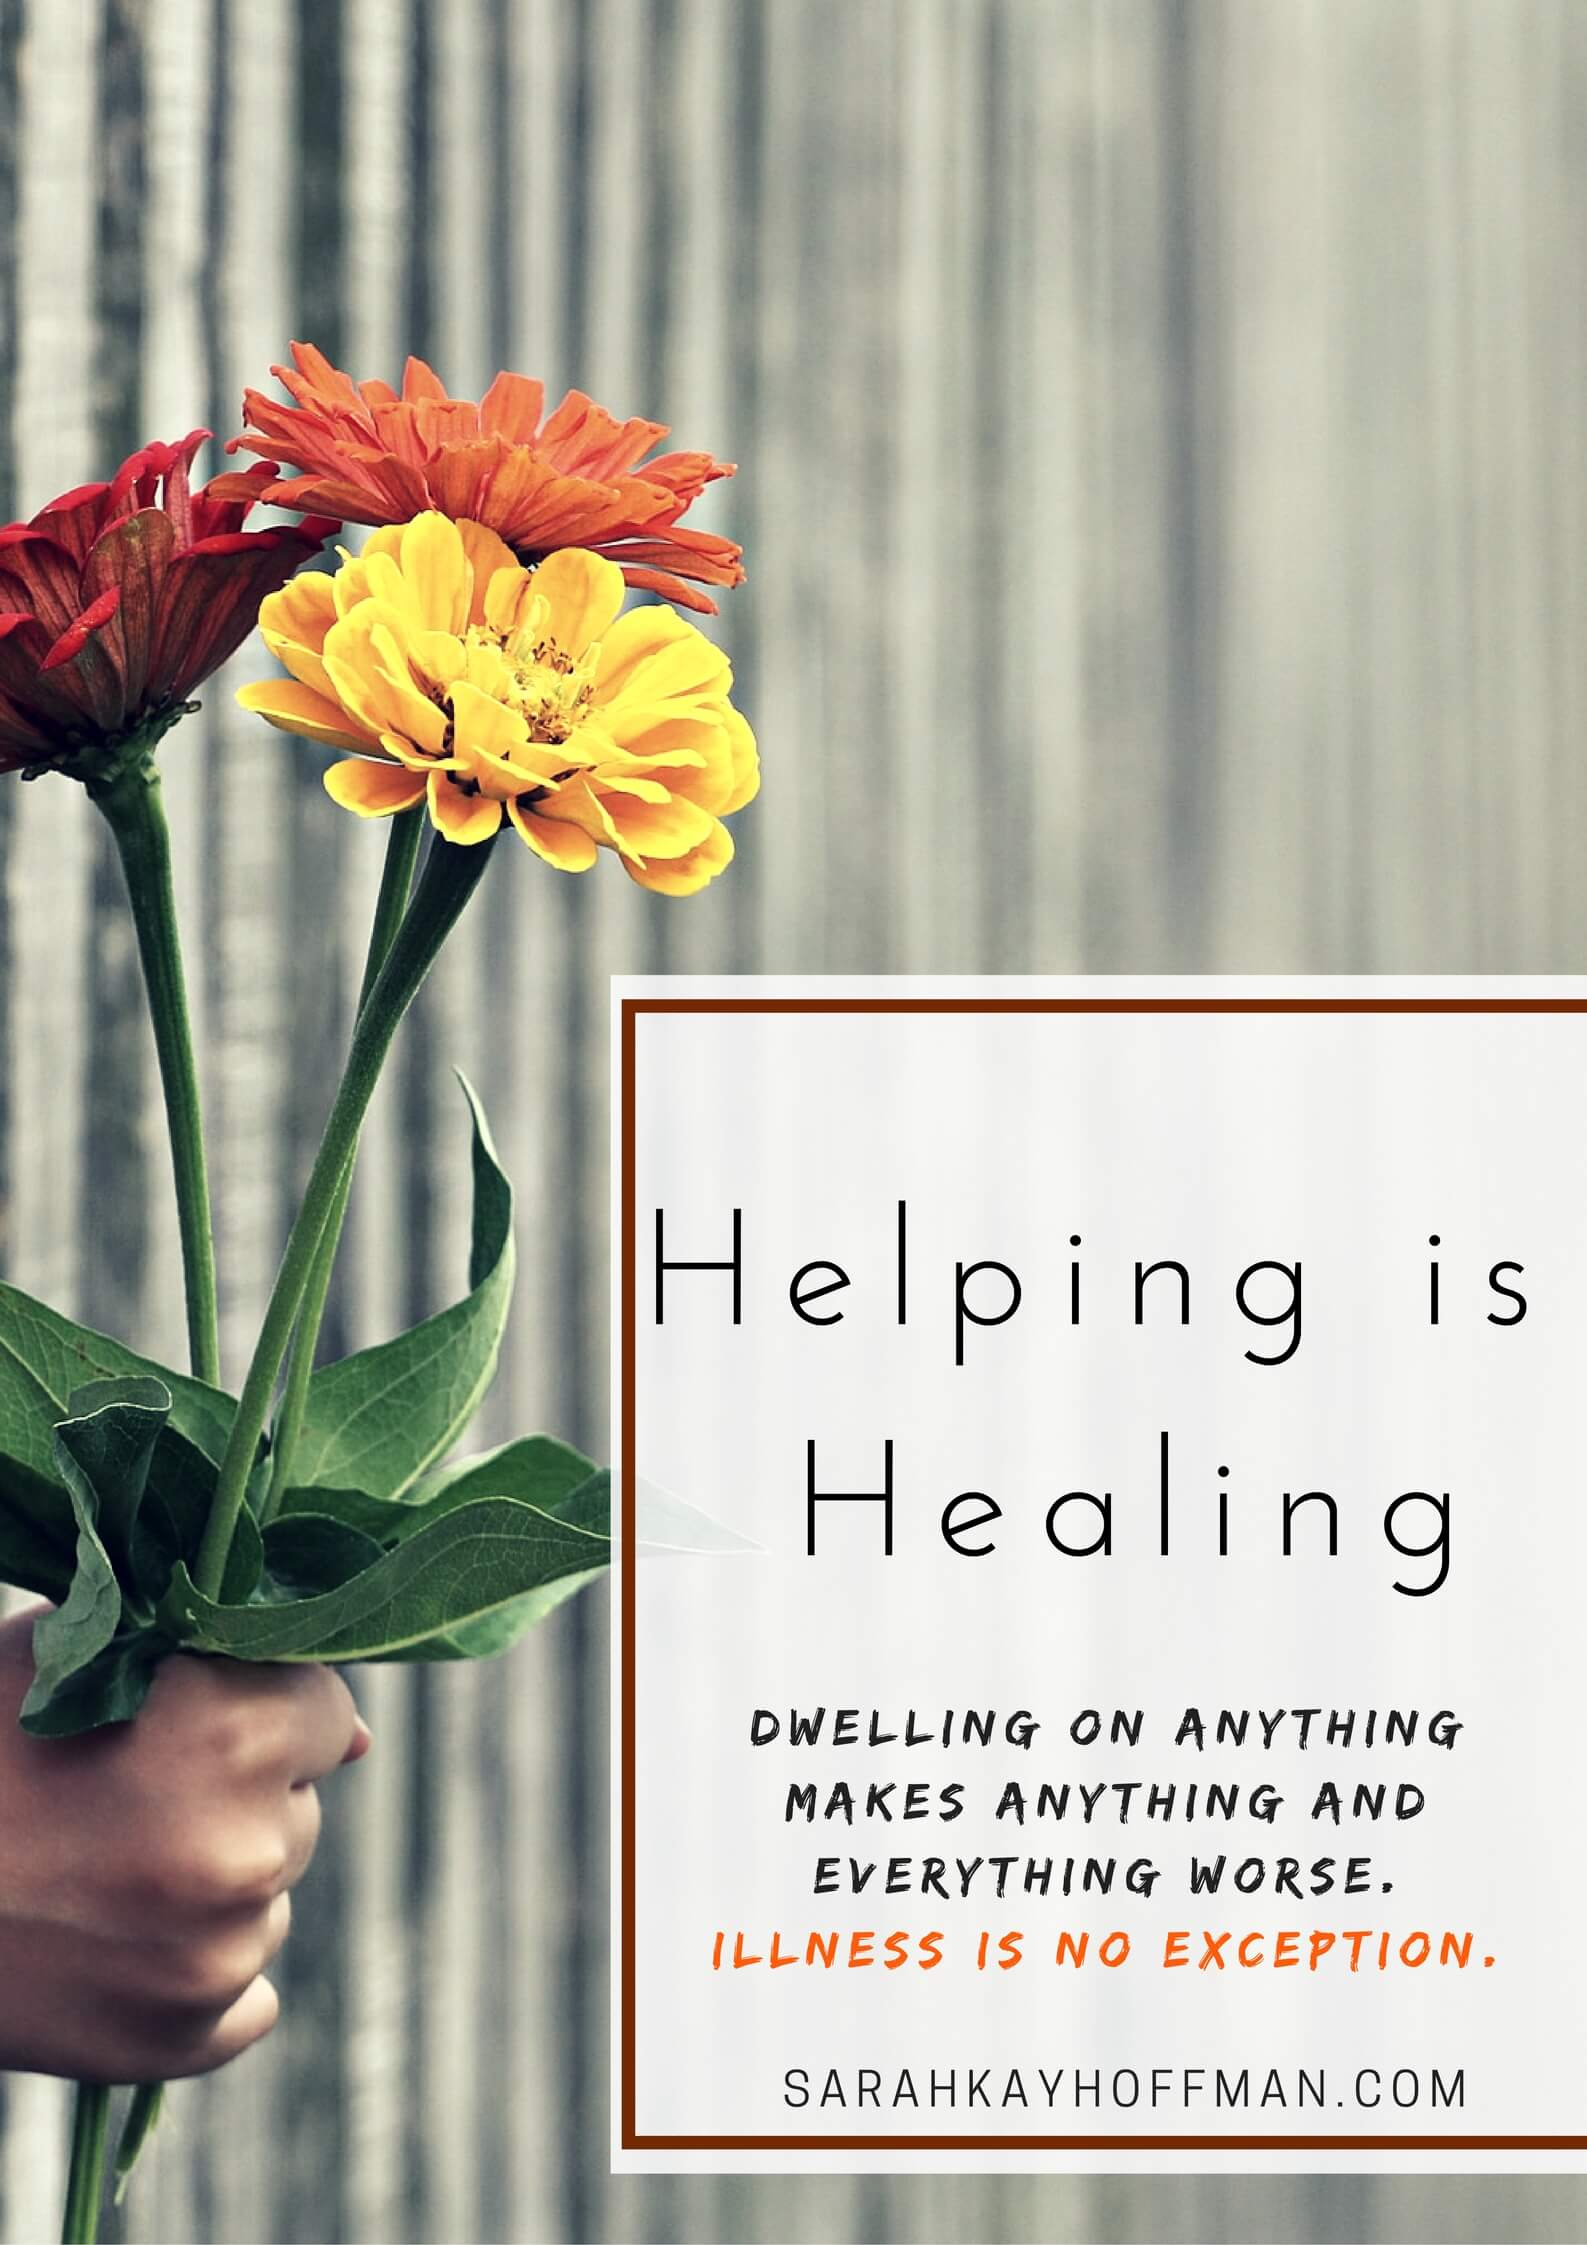 Helping is Healing sarahkayhoffman.com